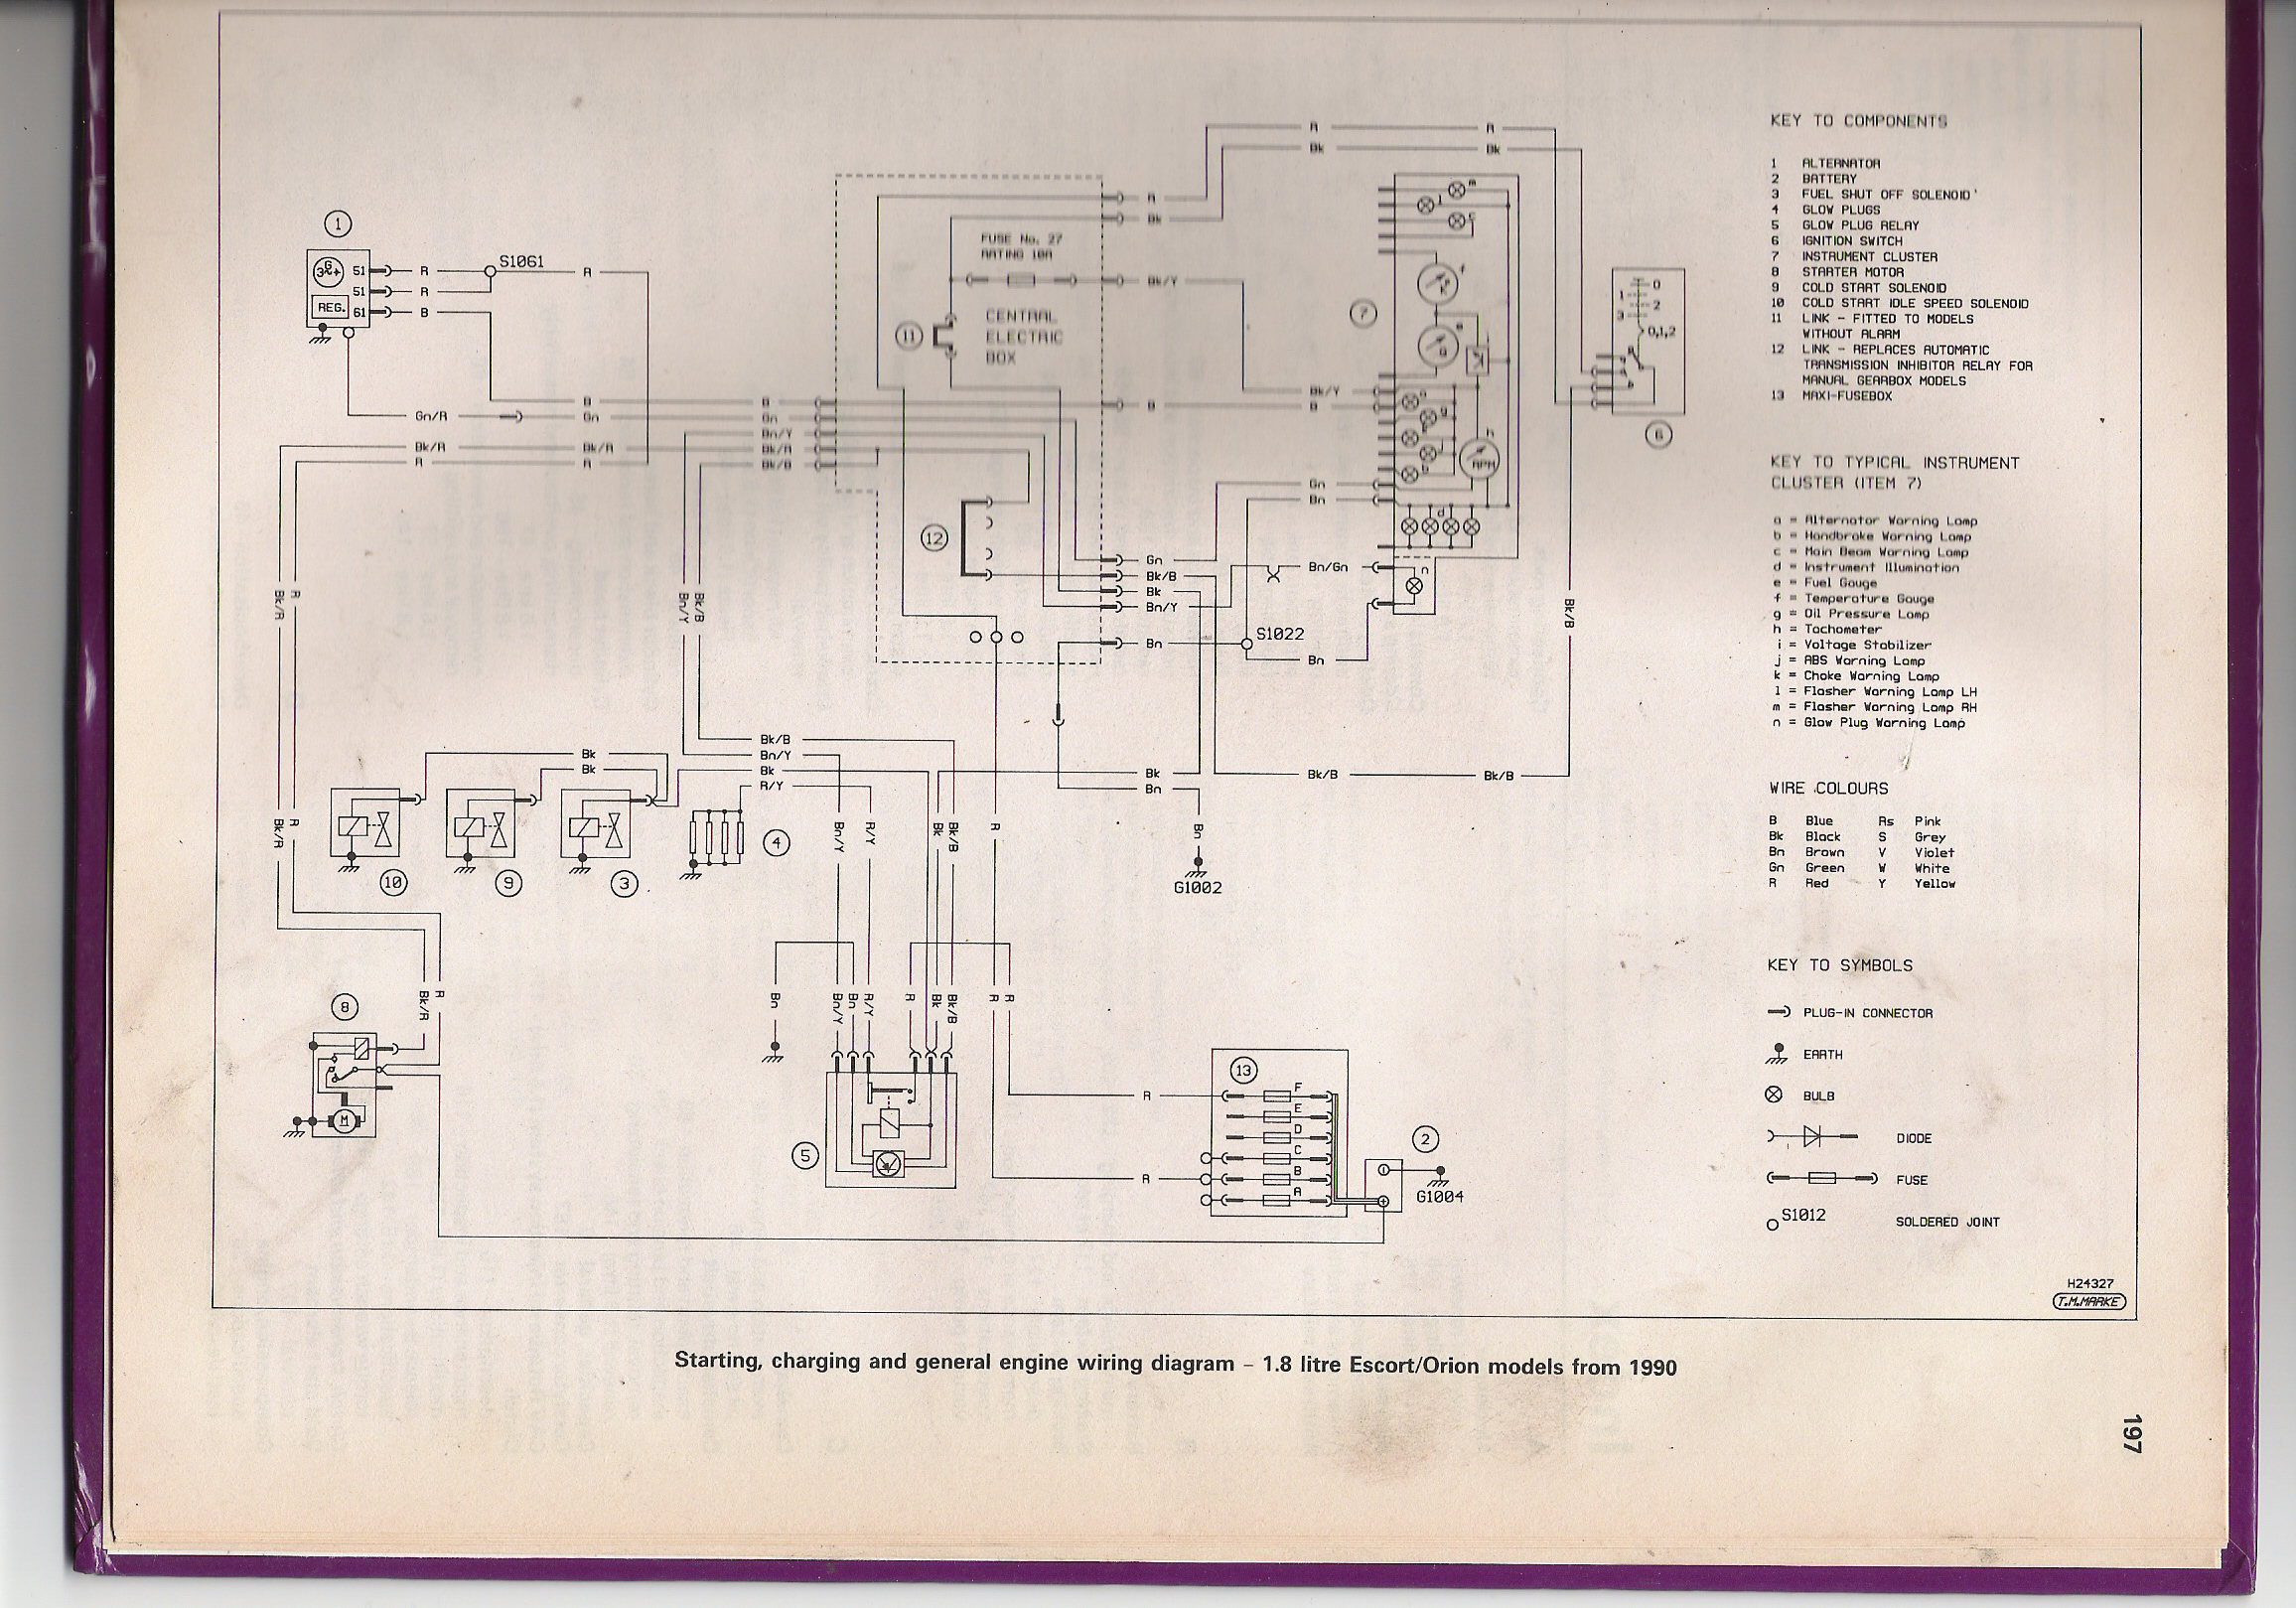 fordwiringdl mk4 wiring diagram wiring diagram symbols \u2022 wiring diagrams j 1979 ford escort wiring diagram at n-0.co